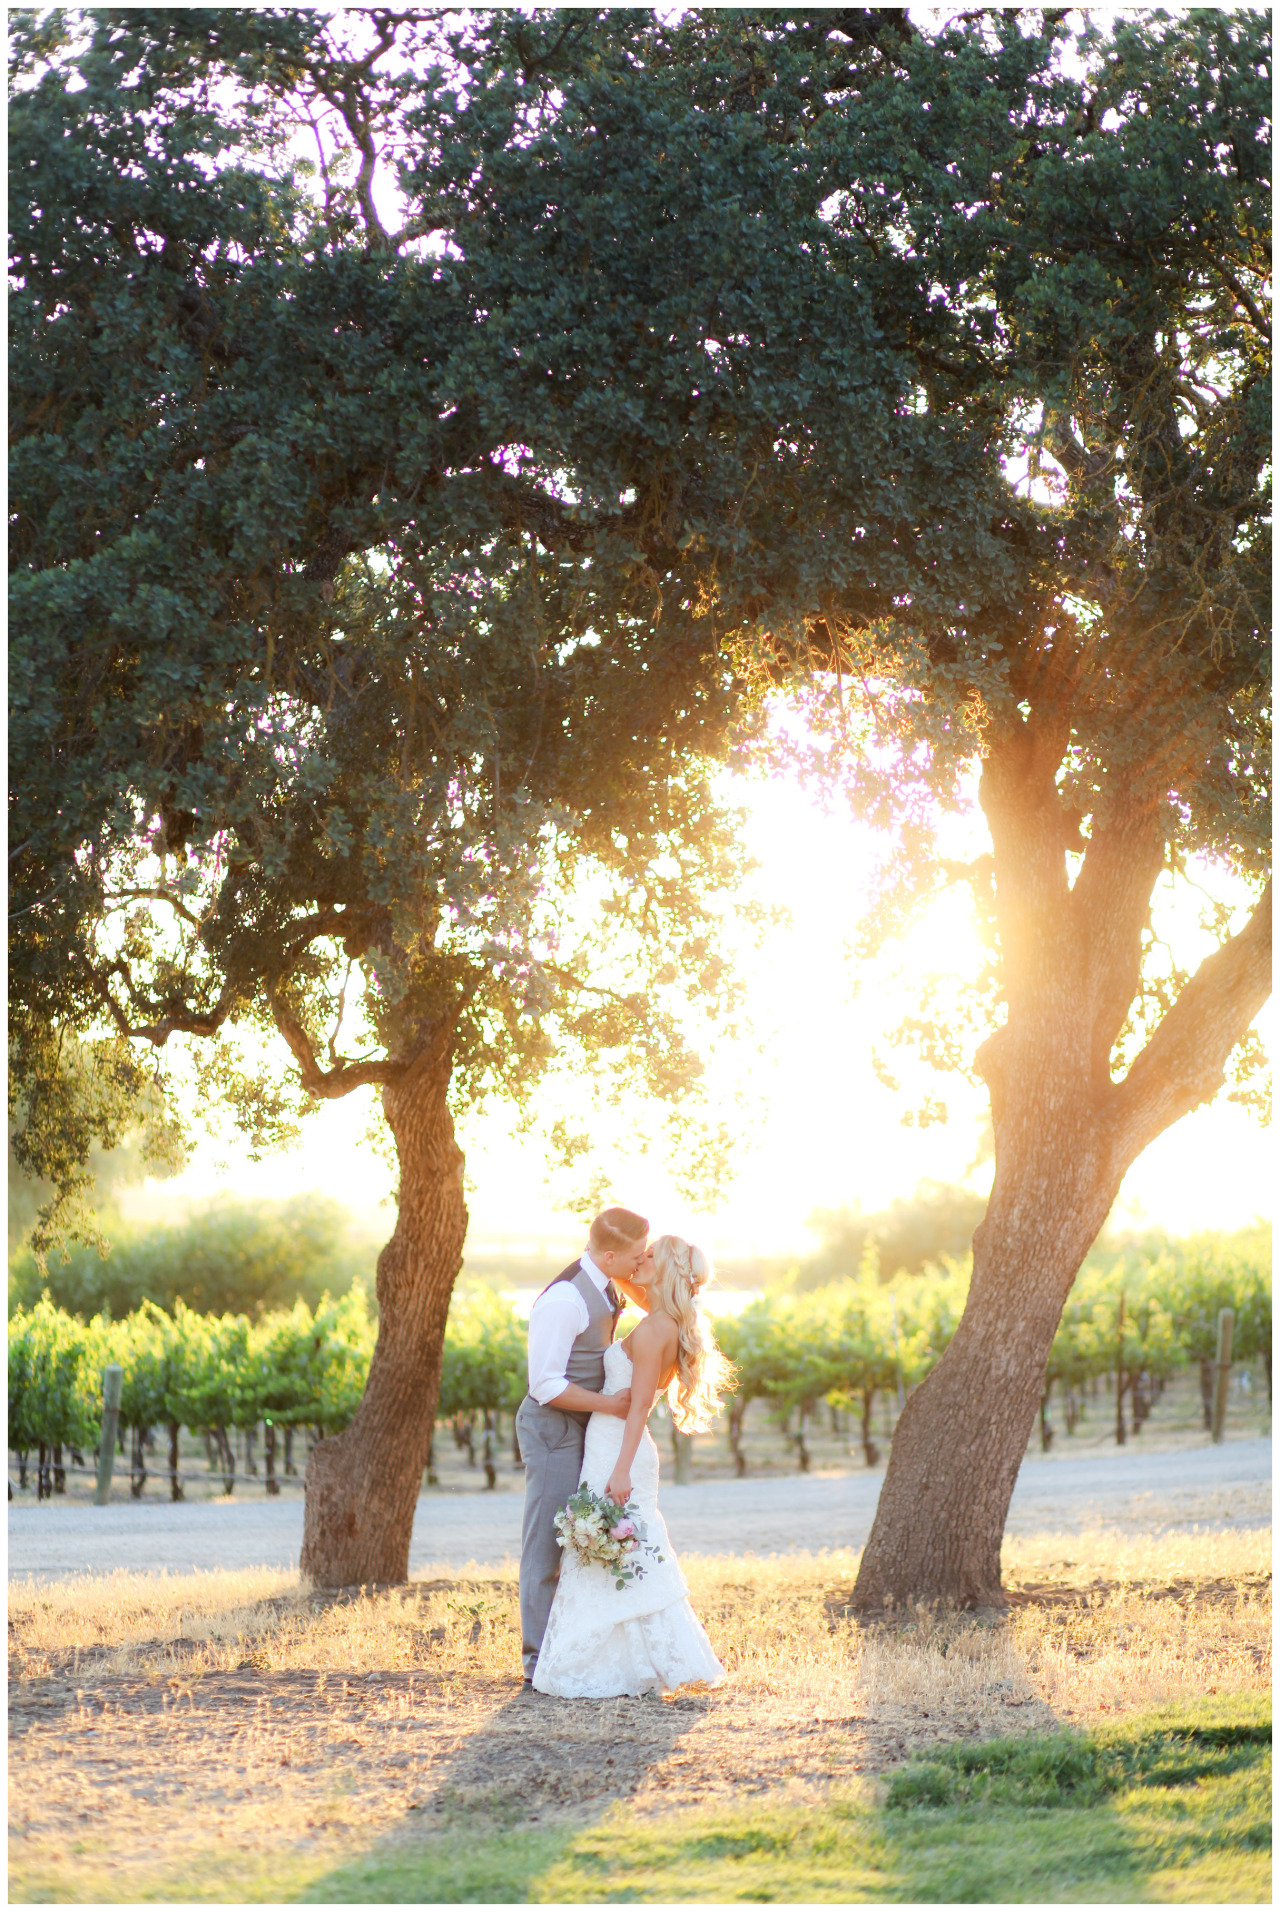 Yesterdays Paso Robles wedding was perfection. I can't wait to show it all!          ©bschwartz           www.bschwartzphotography.com